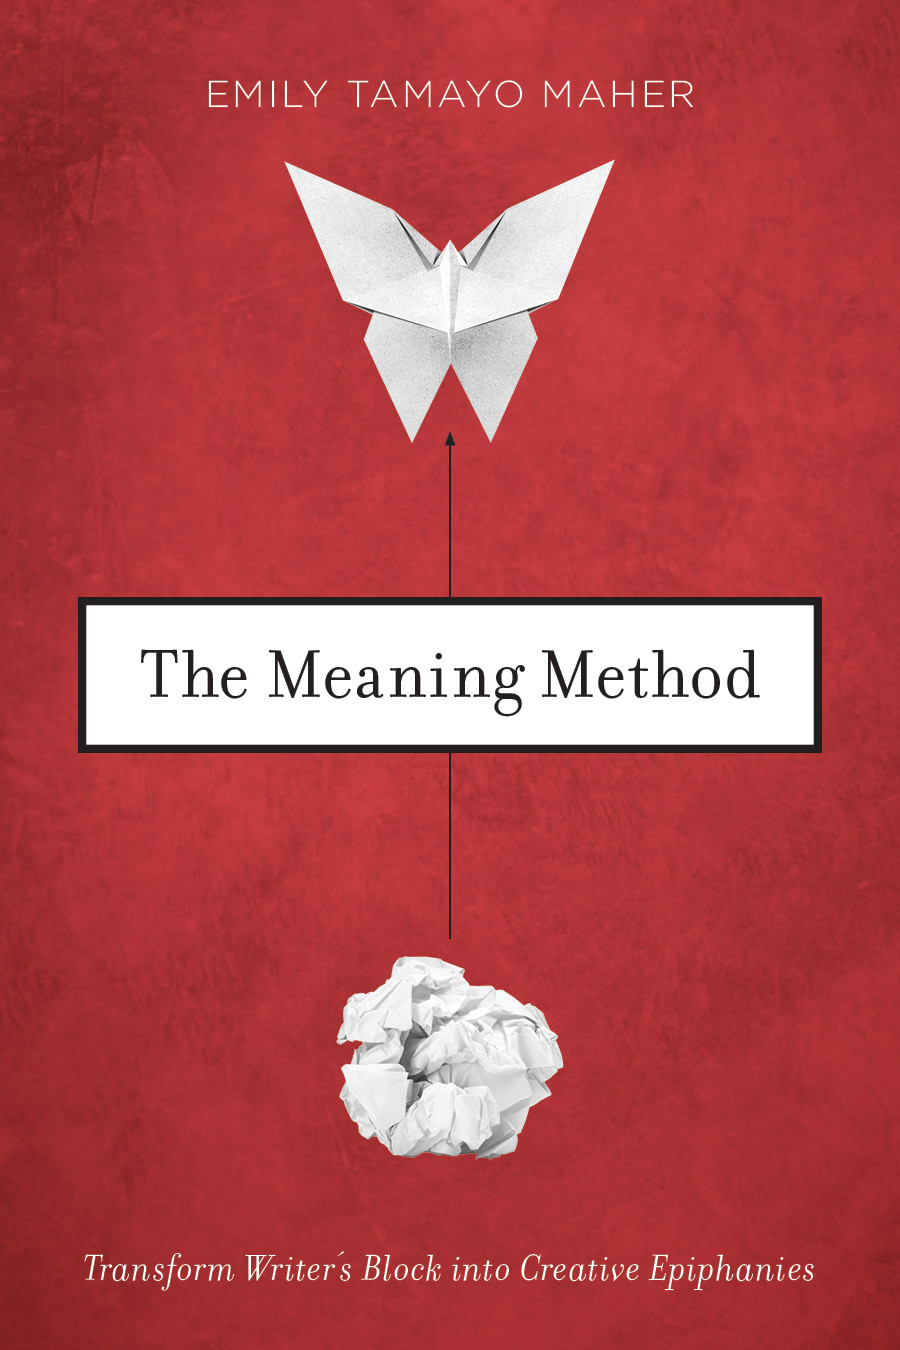 1Cover_The_Meaning_Method_3.jpg